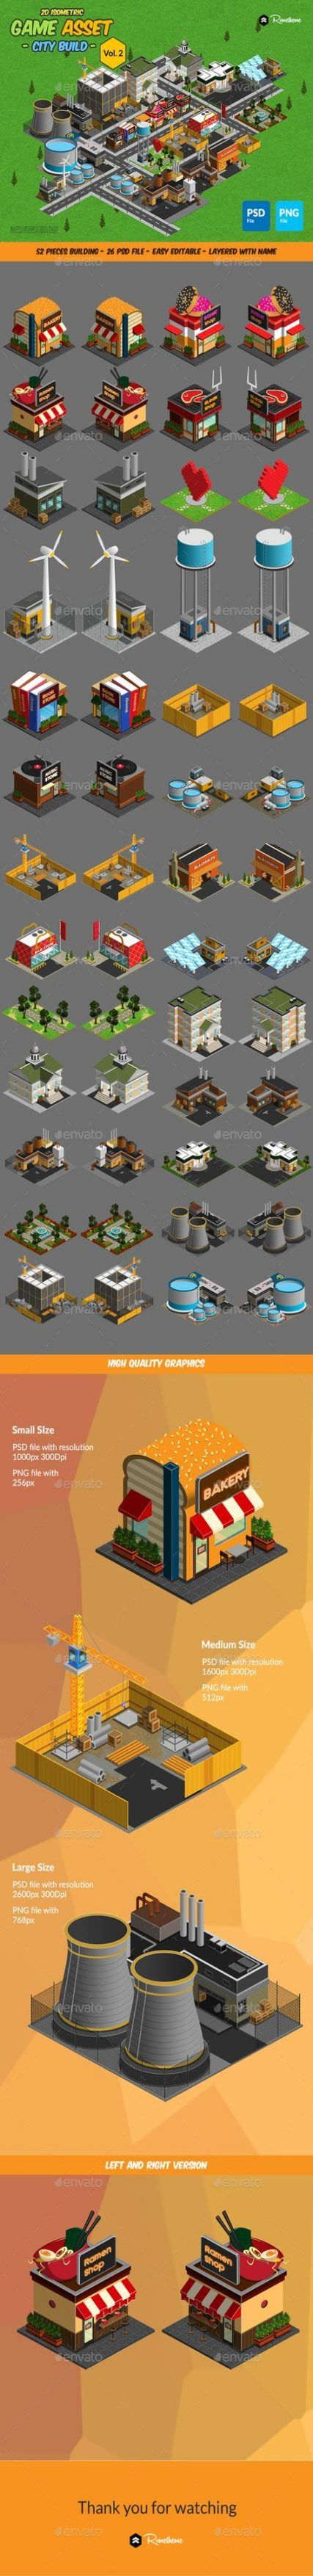 New isometric games art building design reference ideas – Nail Game